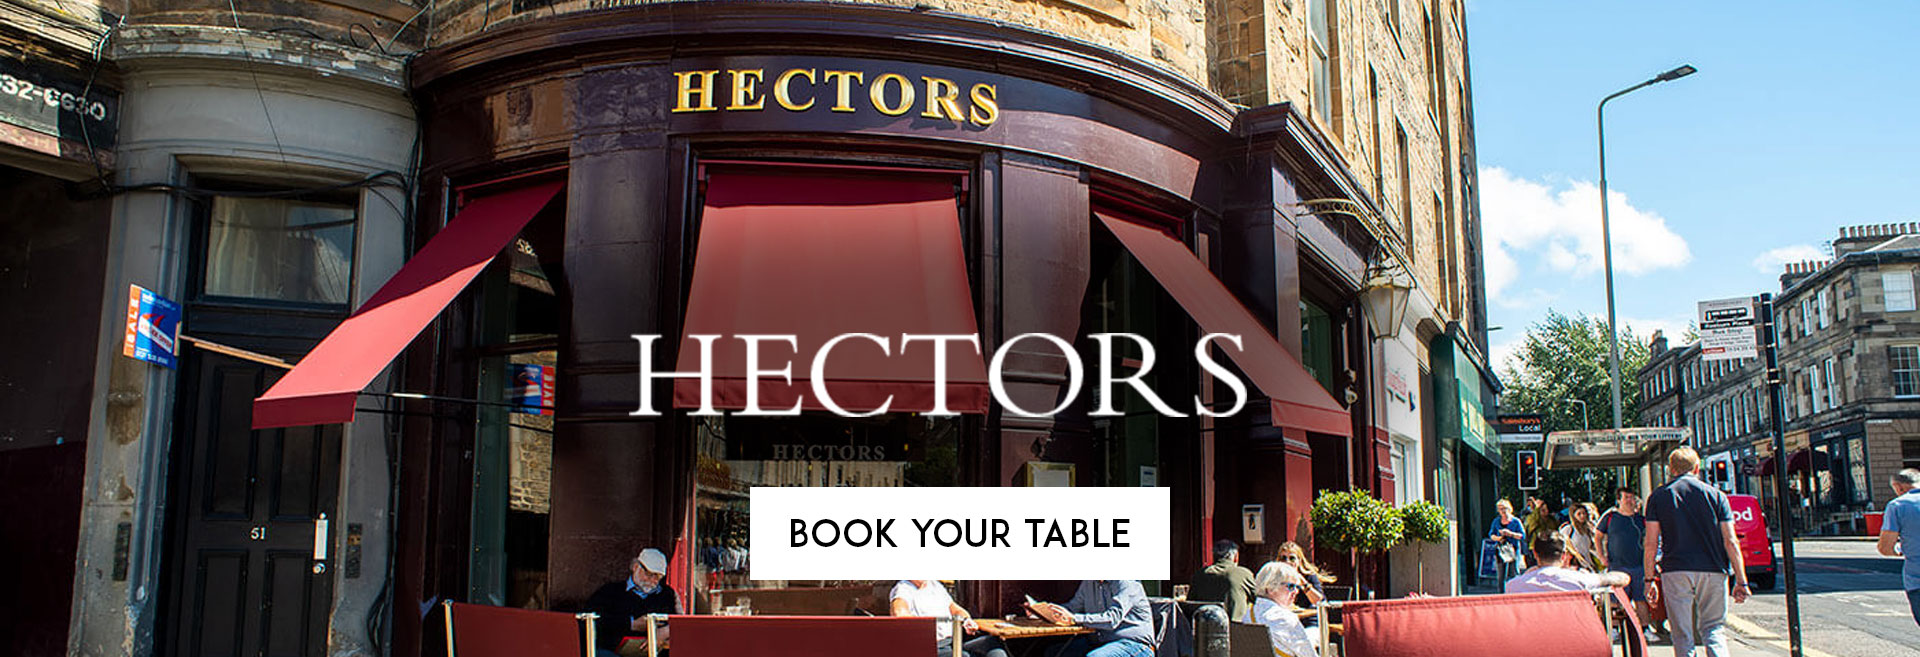 Book Your Table at Hector's